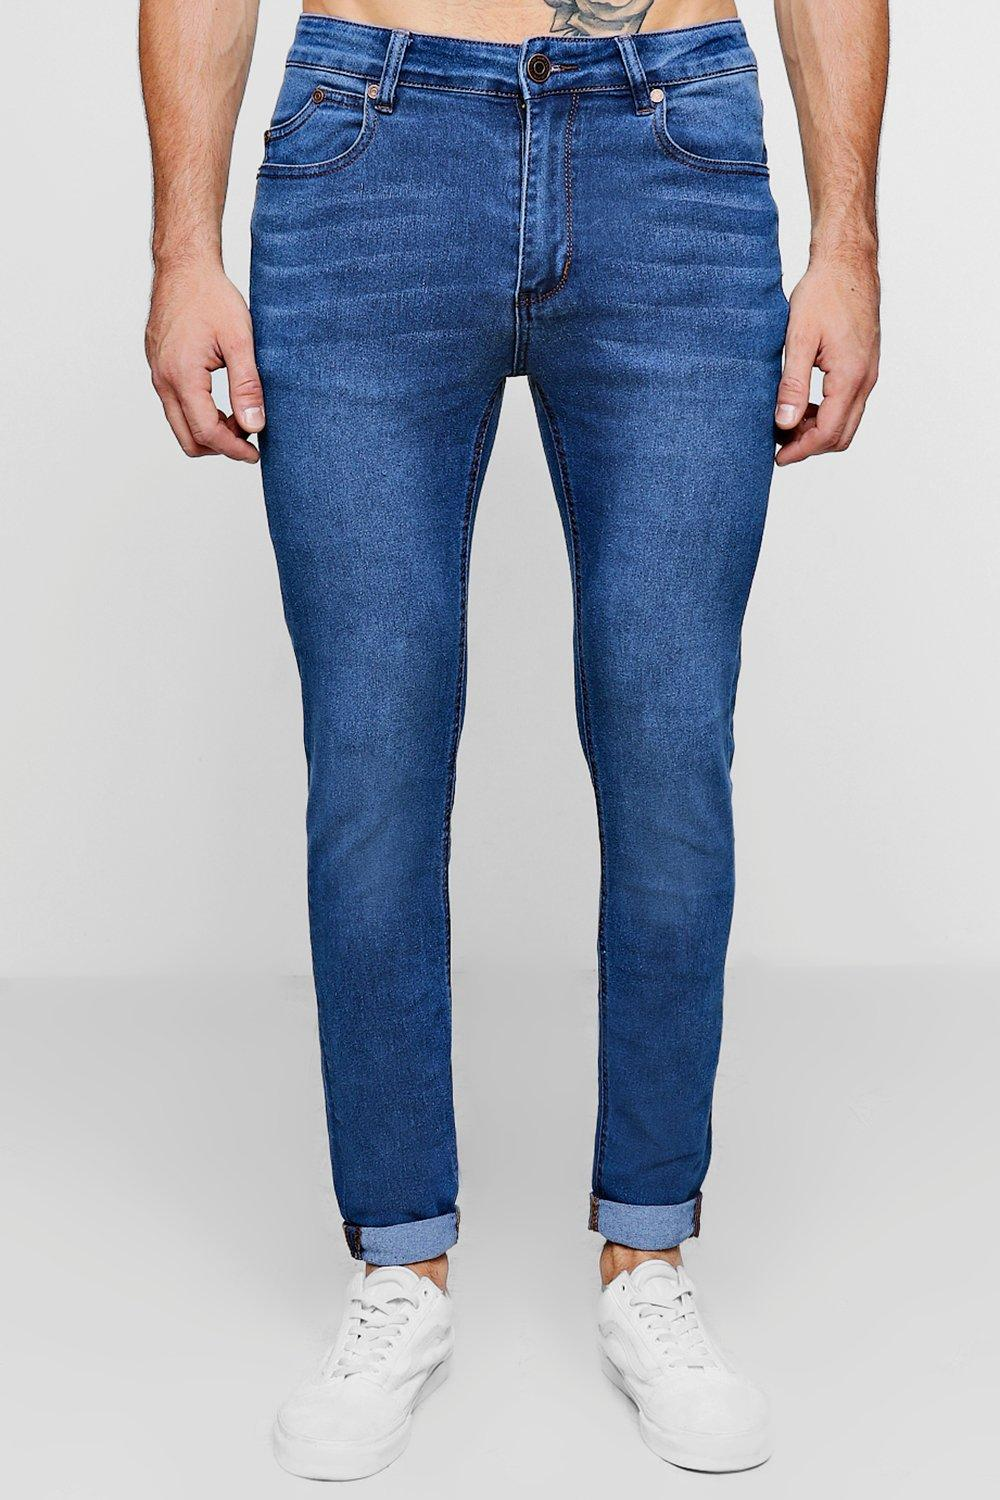 Fit Washed Washed blue Jeans Fit Skinny Jeans Jeans blue Fit Skinny Skinny Washed qtcaB